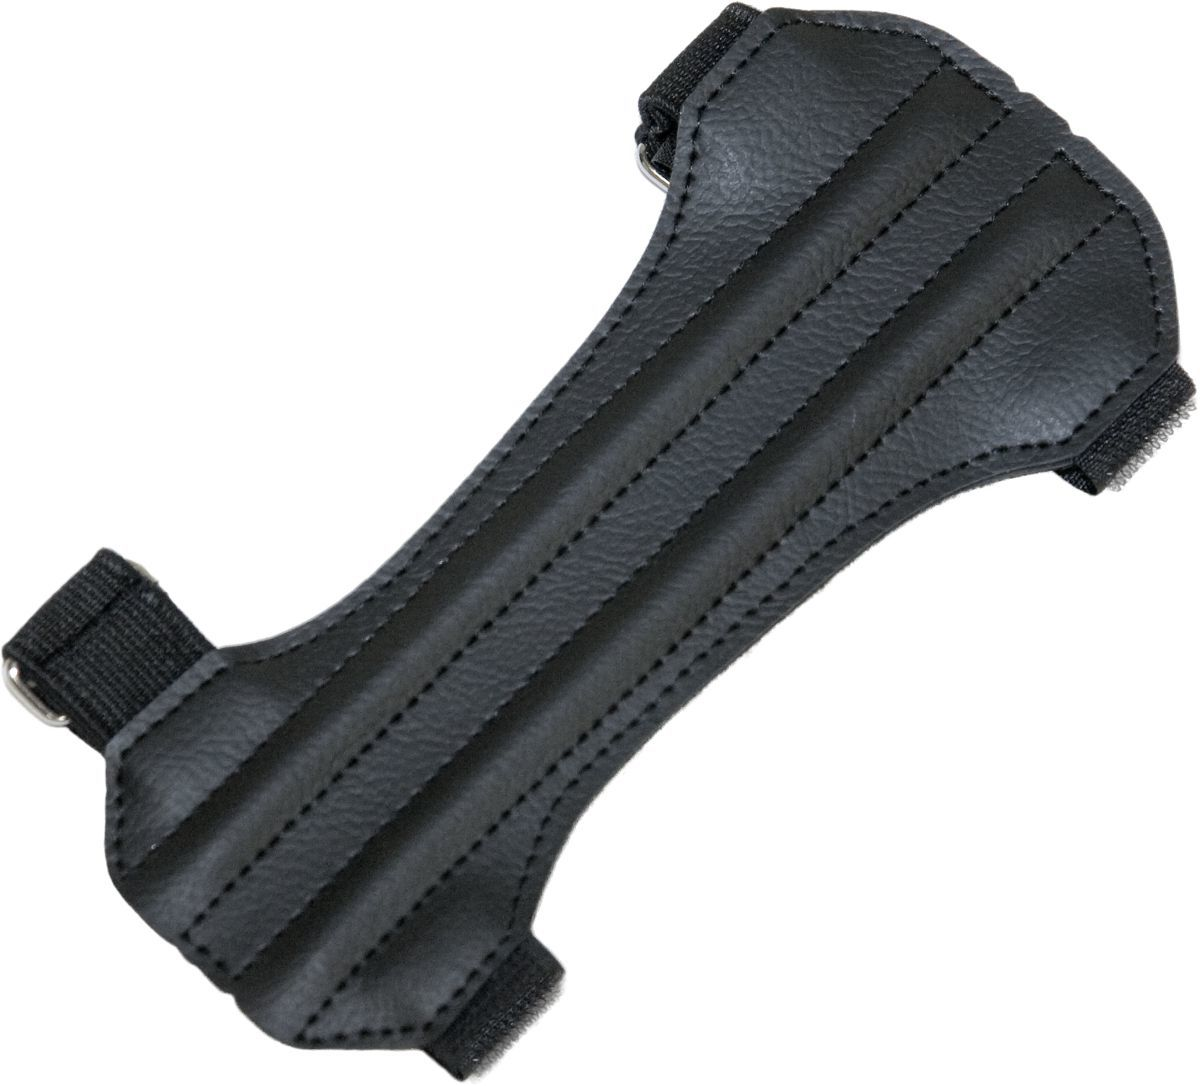 OMP Two-Strap Arm Guard